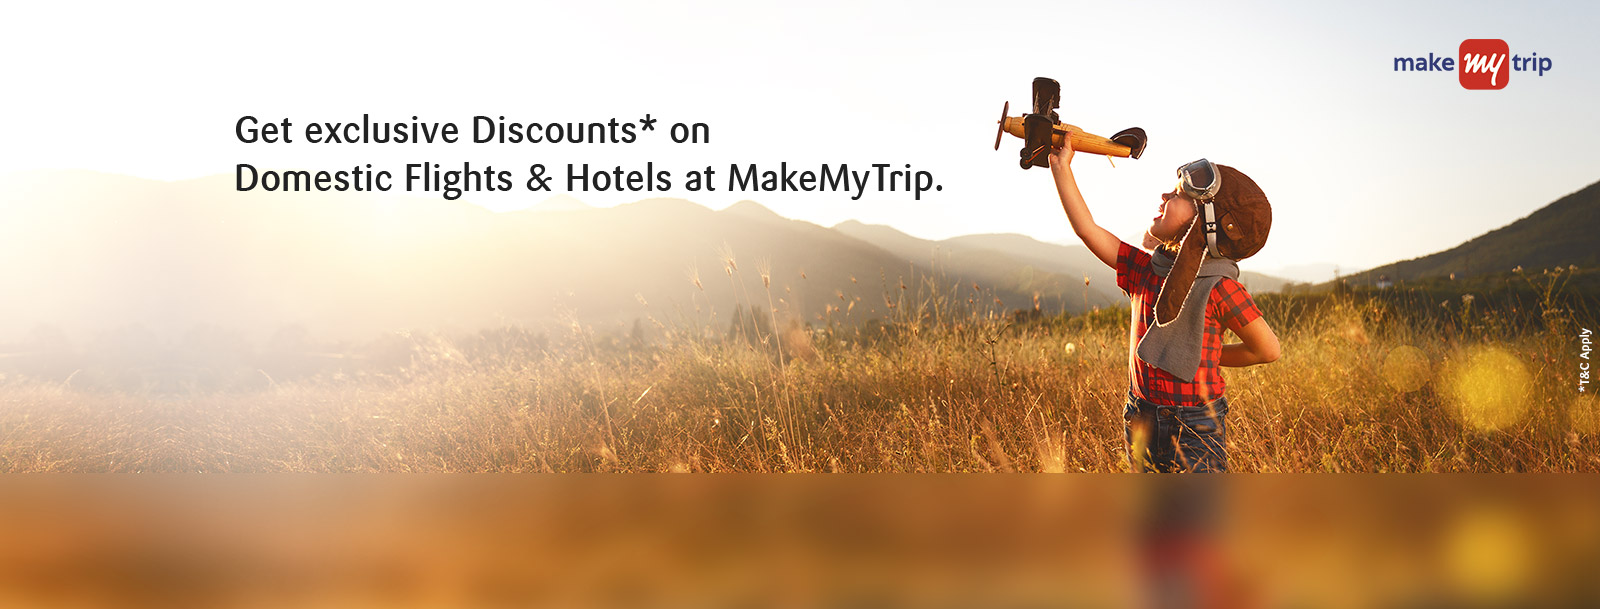 makemytrip sbi coupons for domestic flights 2019